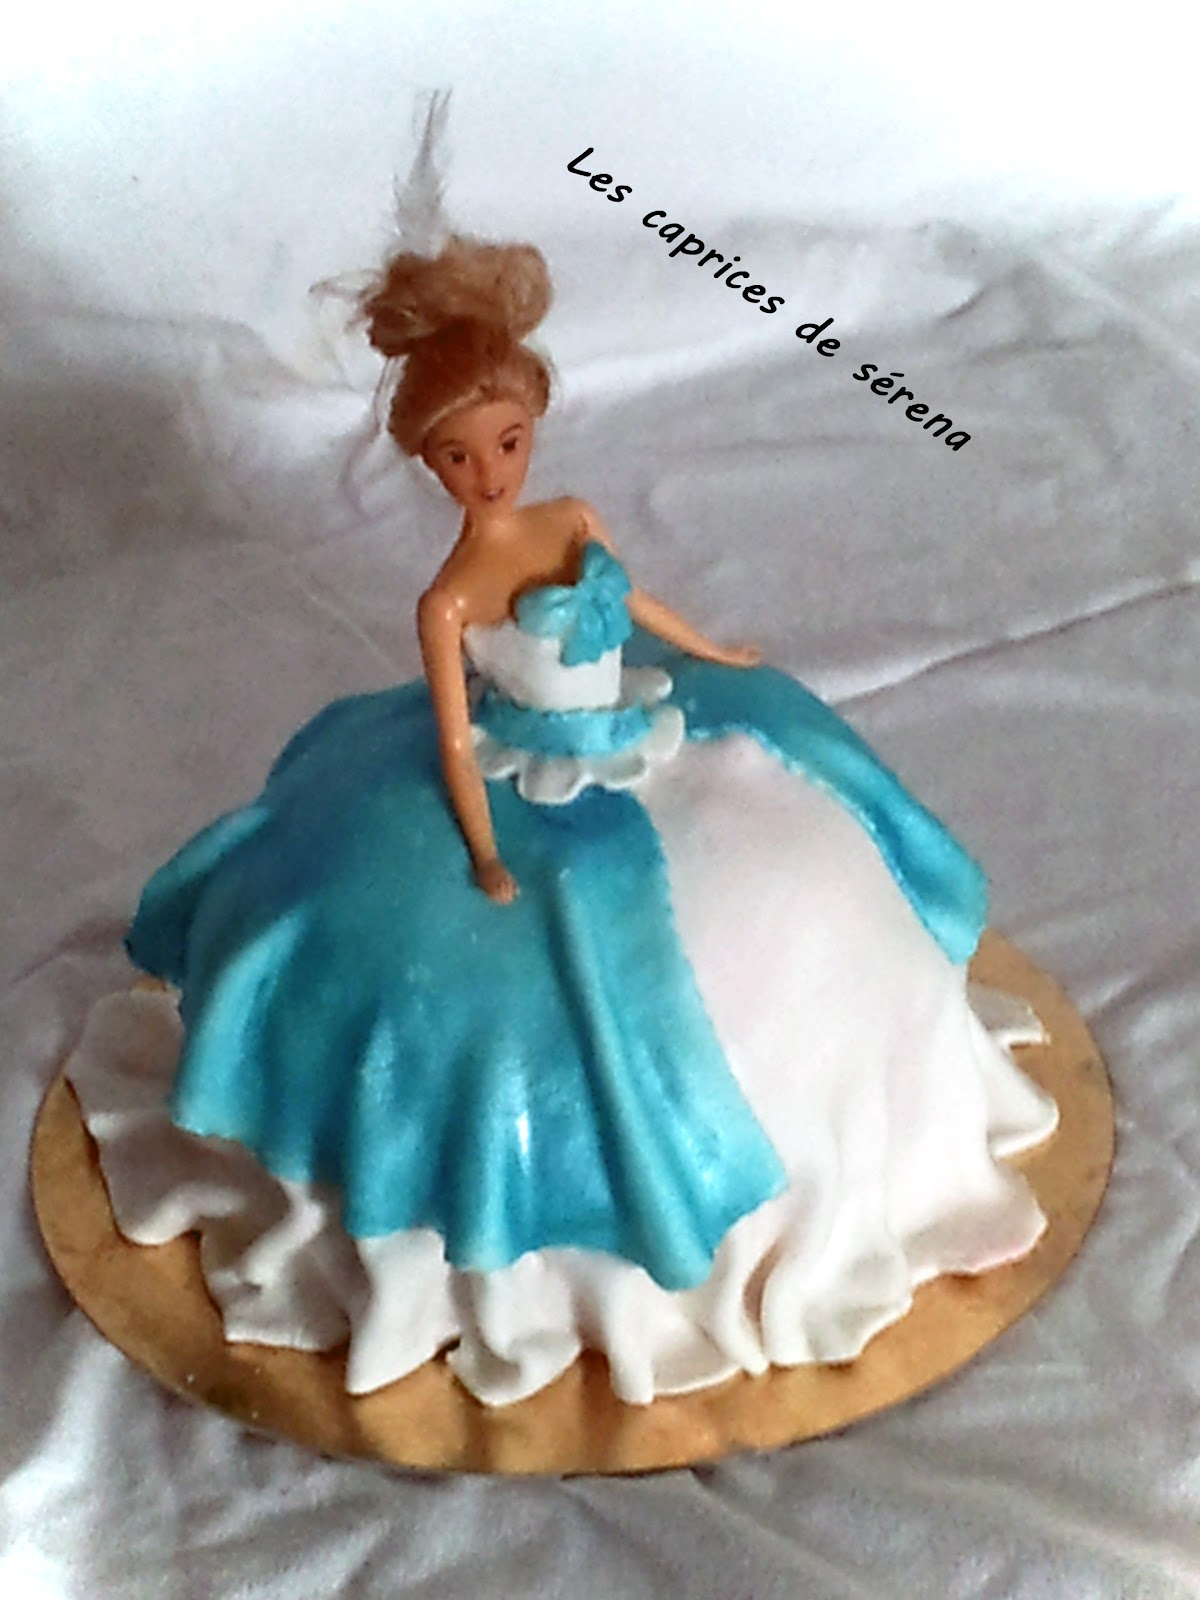 Decoration Gateau Barbie Les Caprices De Serena: Juin 2012